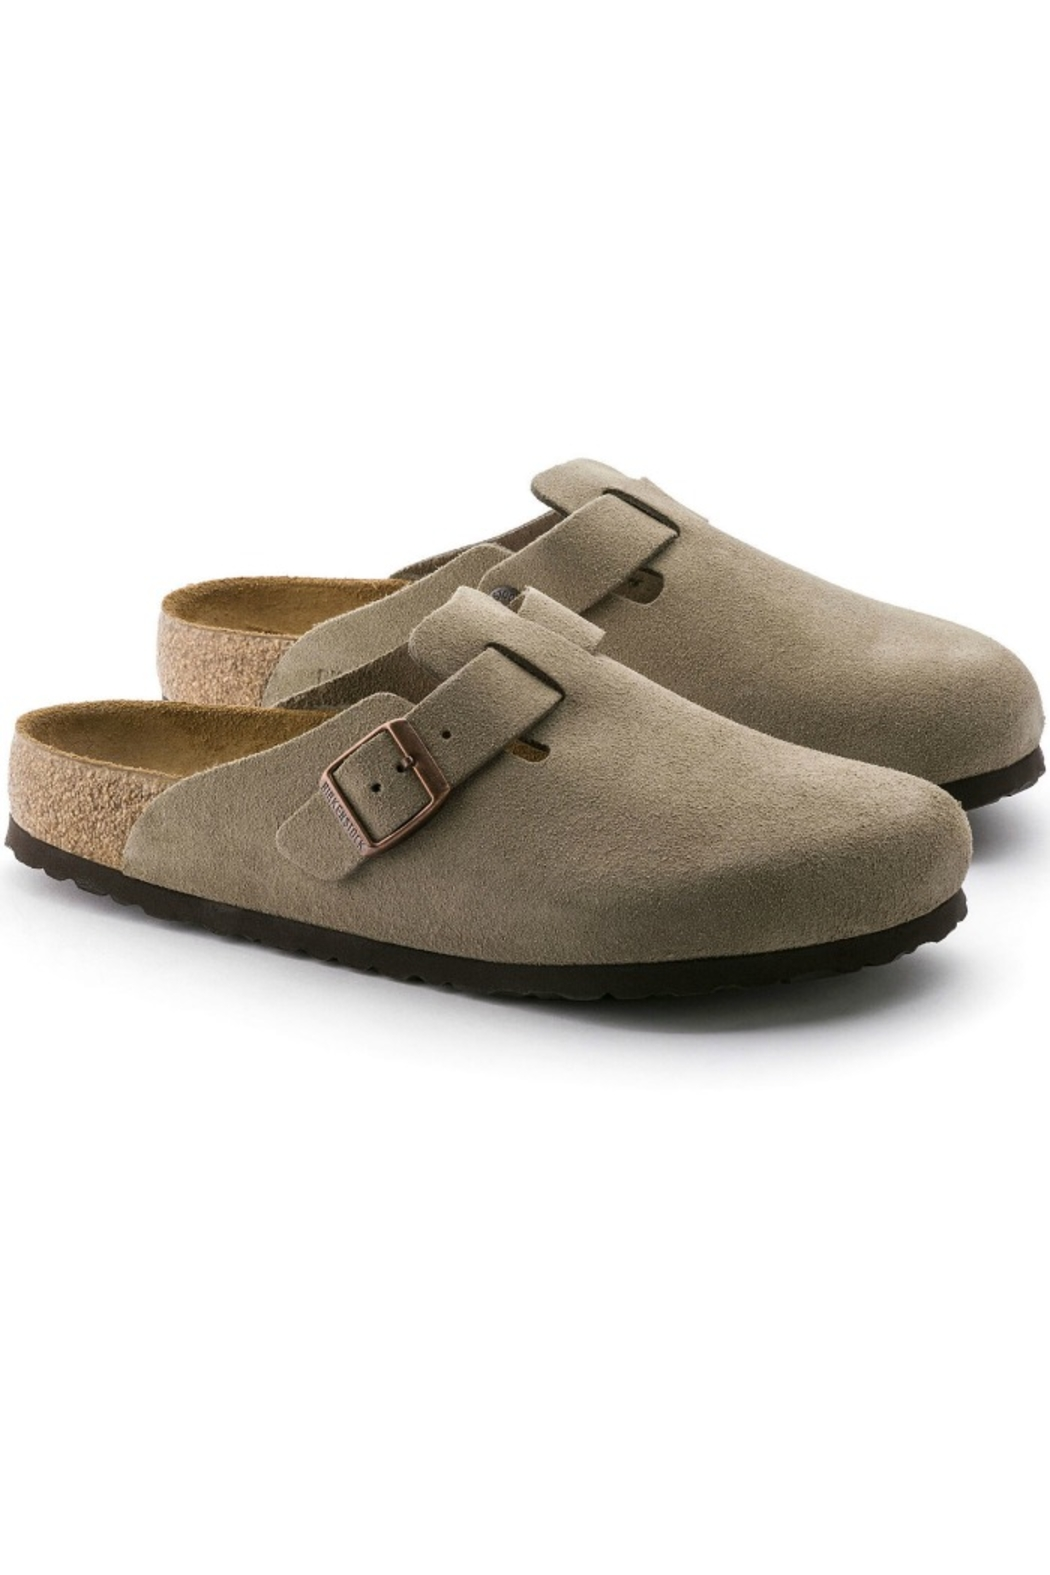 Birkenstock Boston Narrow Width in Taupe - Side Cropped Image